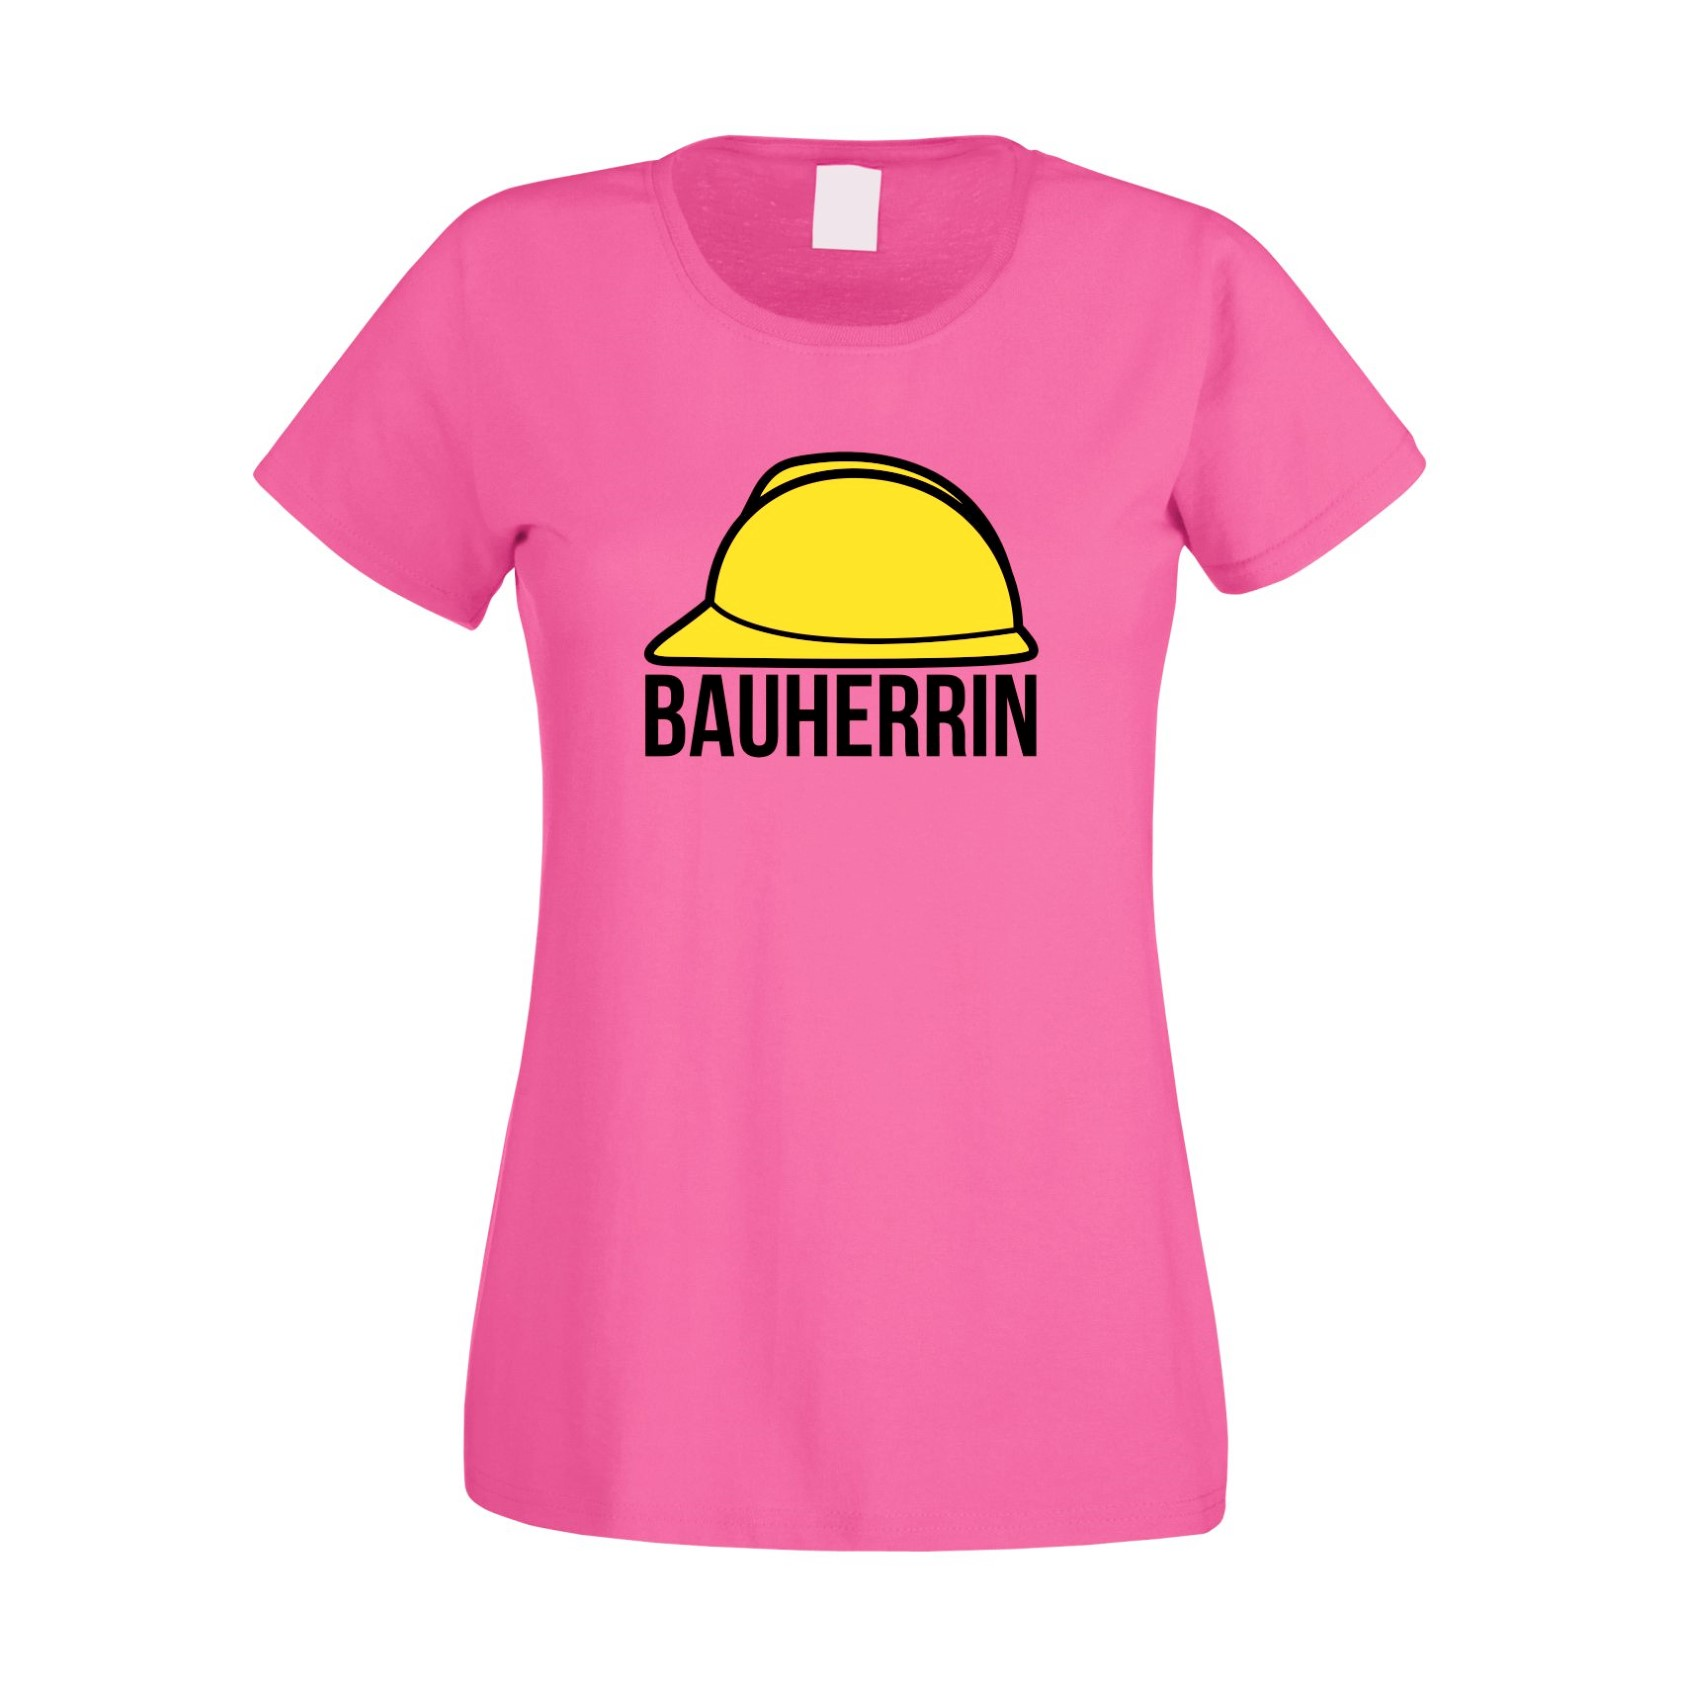 damen t shirt bauherrin helm richtfest hausbau gleichenfeier bau baustelle ebay. Black Bedroom Furniture Sets. Home Design Ideas